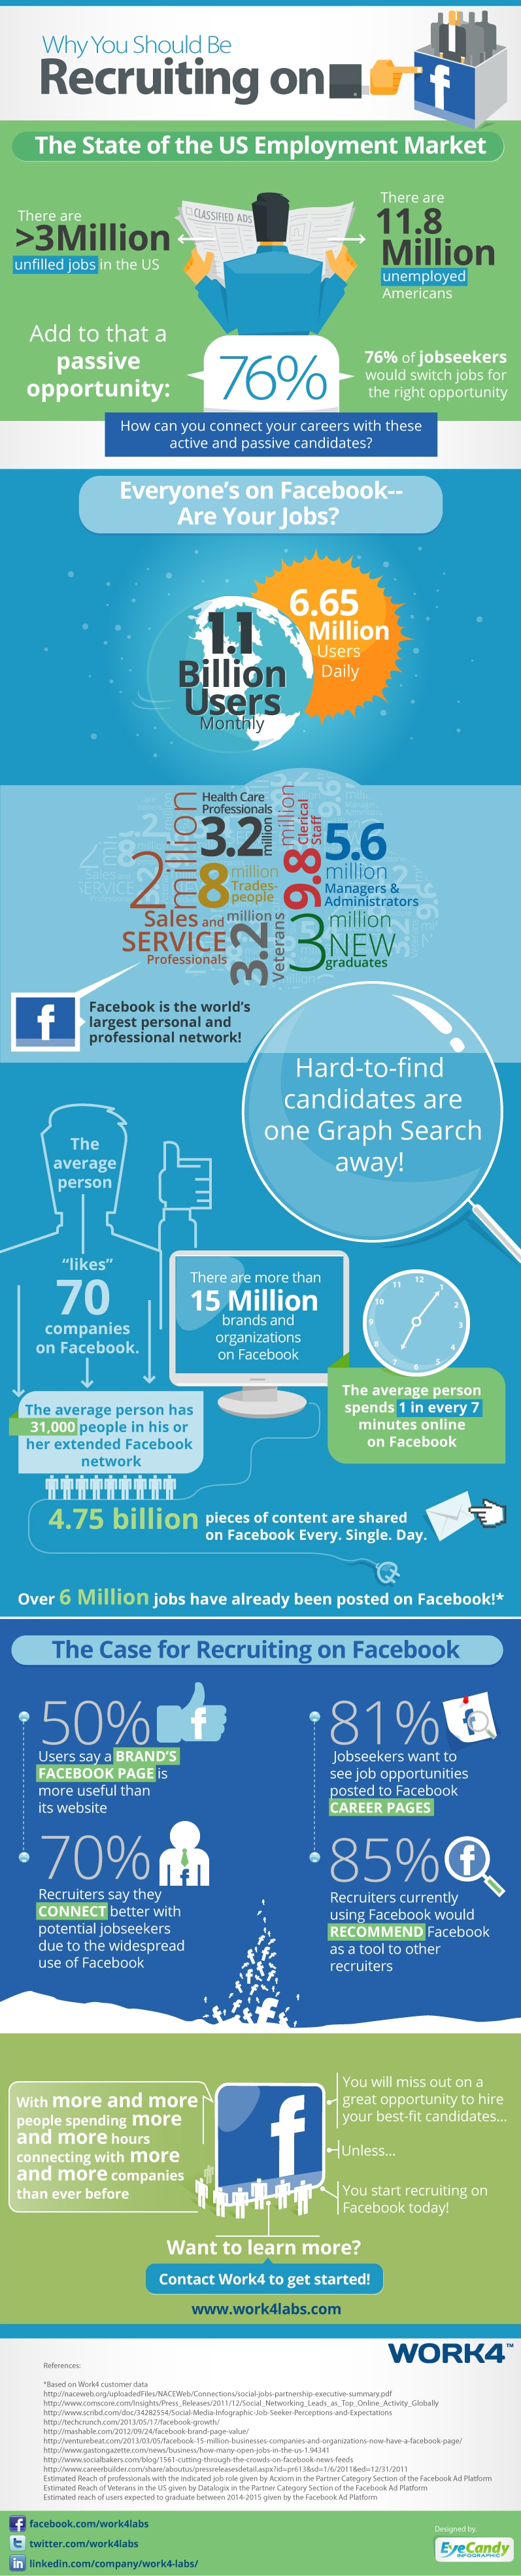 Why You Should Be Recruiting on Facebook